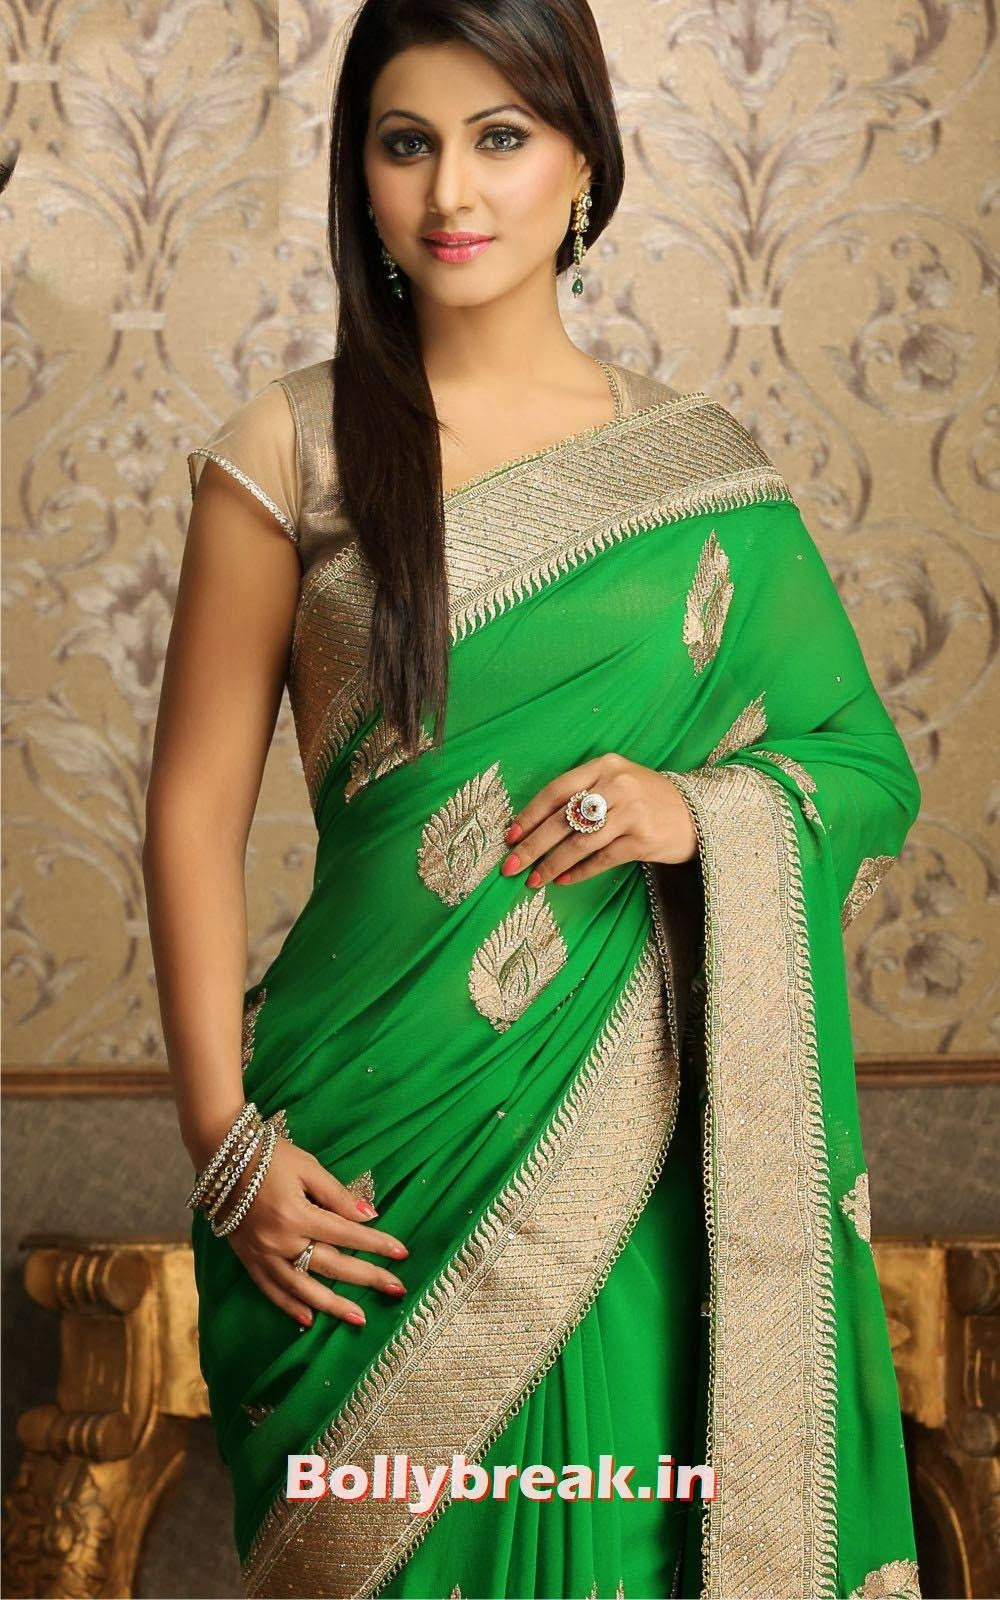 , Hina Khan Latest Hot Pics in Saree - Yeh Rishta Kya Kehlata Hai Actress